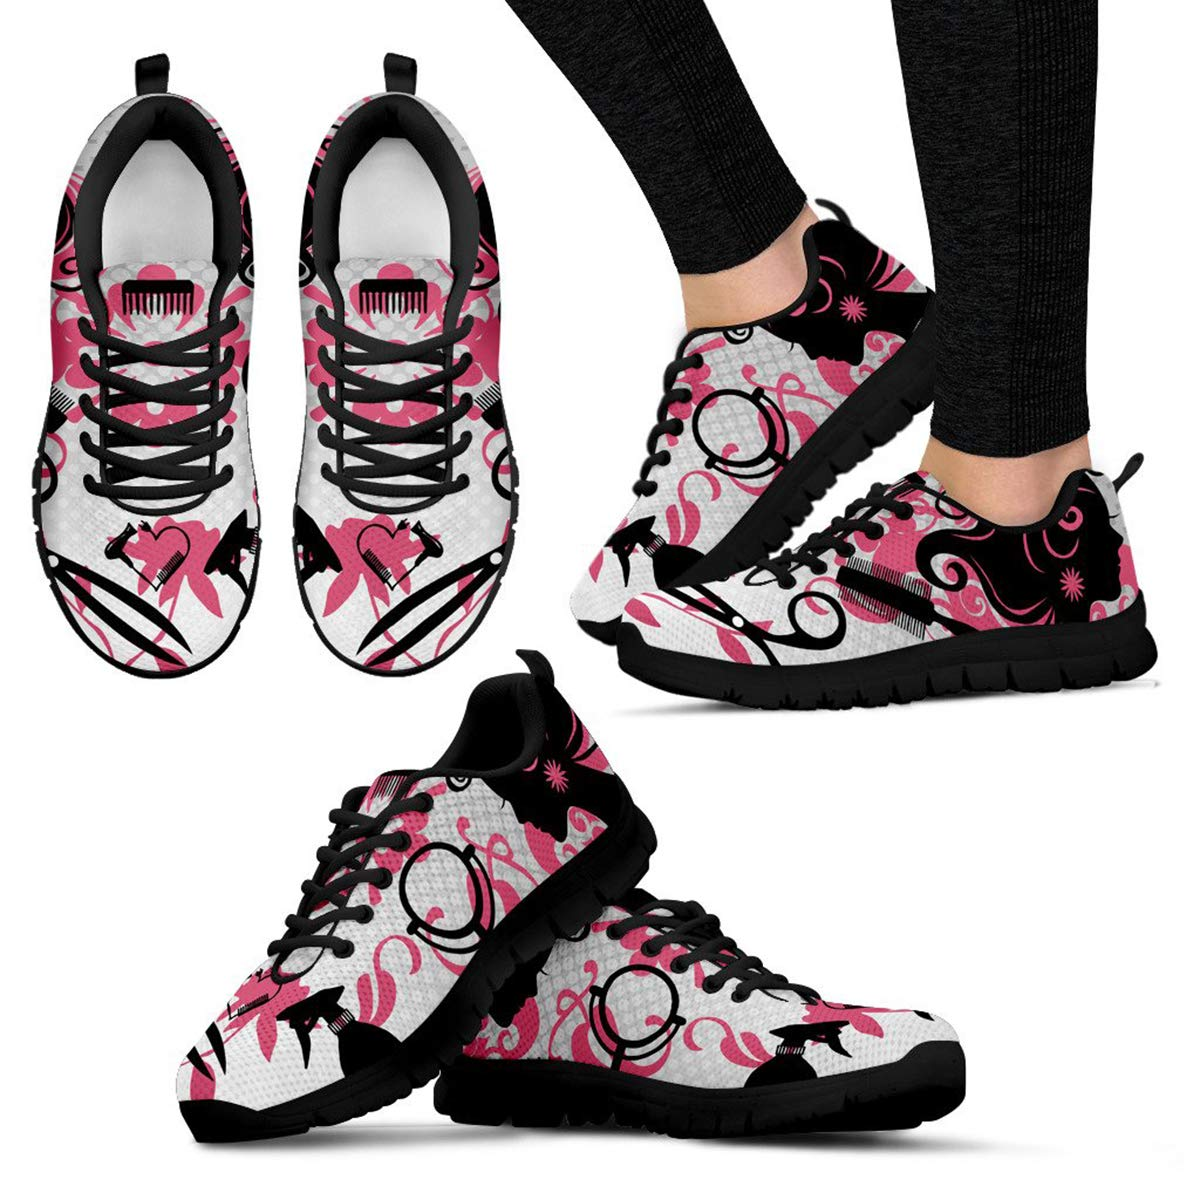 Footwear by Chelsydale Hairstylist Gift Ideas Women Sneakers Shoes for Hairdresser Beautician Bk